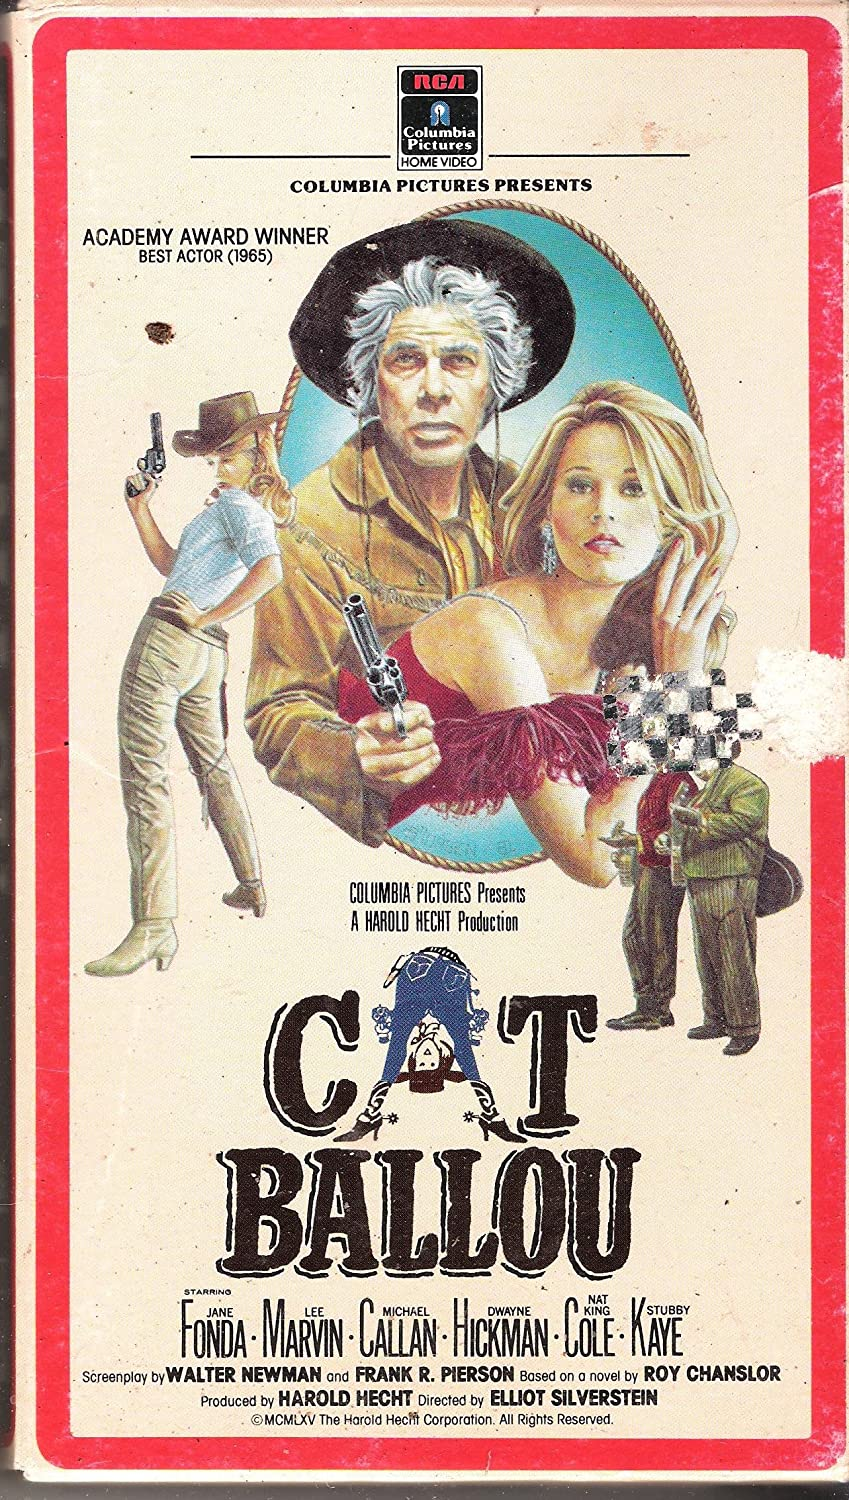 1000 ideas about cat ballou on pinterest on golden pond westerns and chuck norris movies. Black Bedroom Furniture Sets. Home Design Ideas